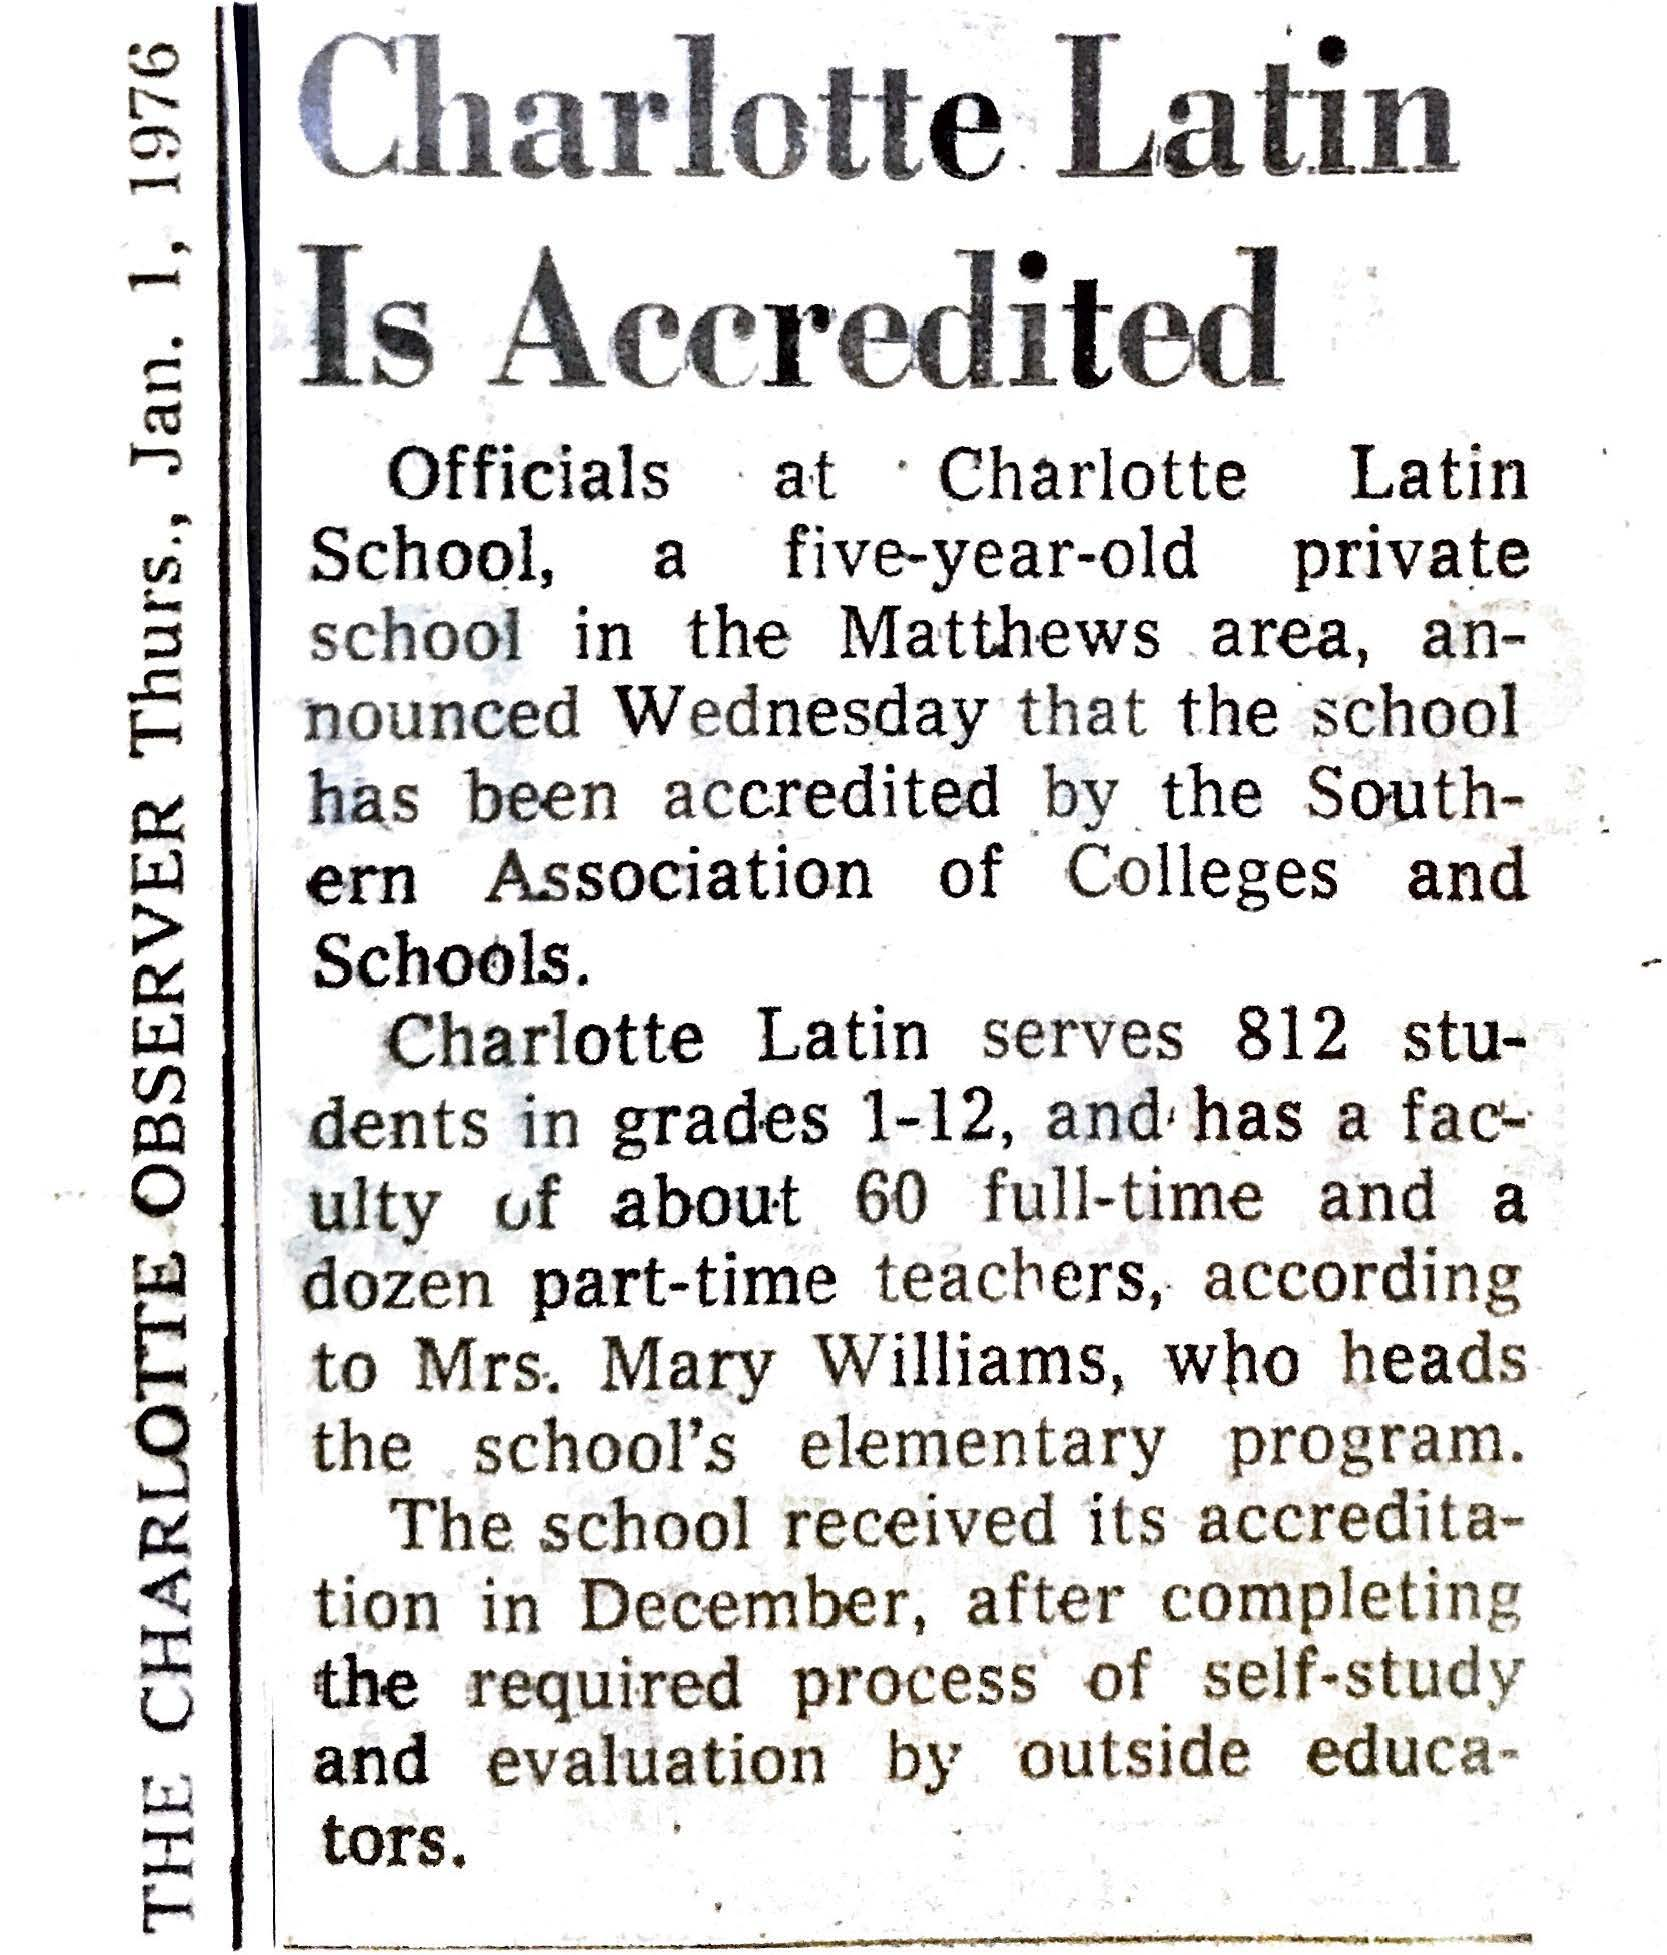 SAIS Accreditation - Latin receives accreditation from Southern Association of Colleges and Schools.